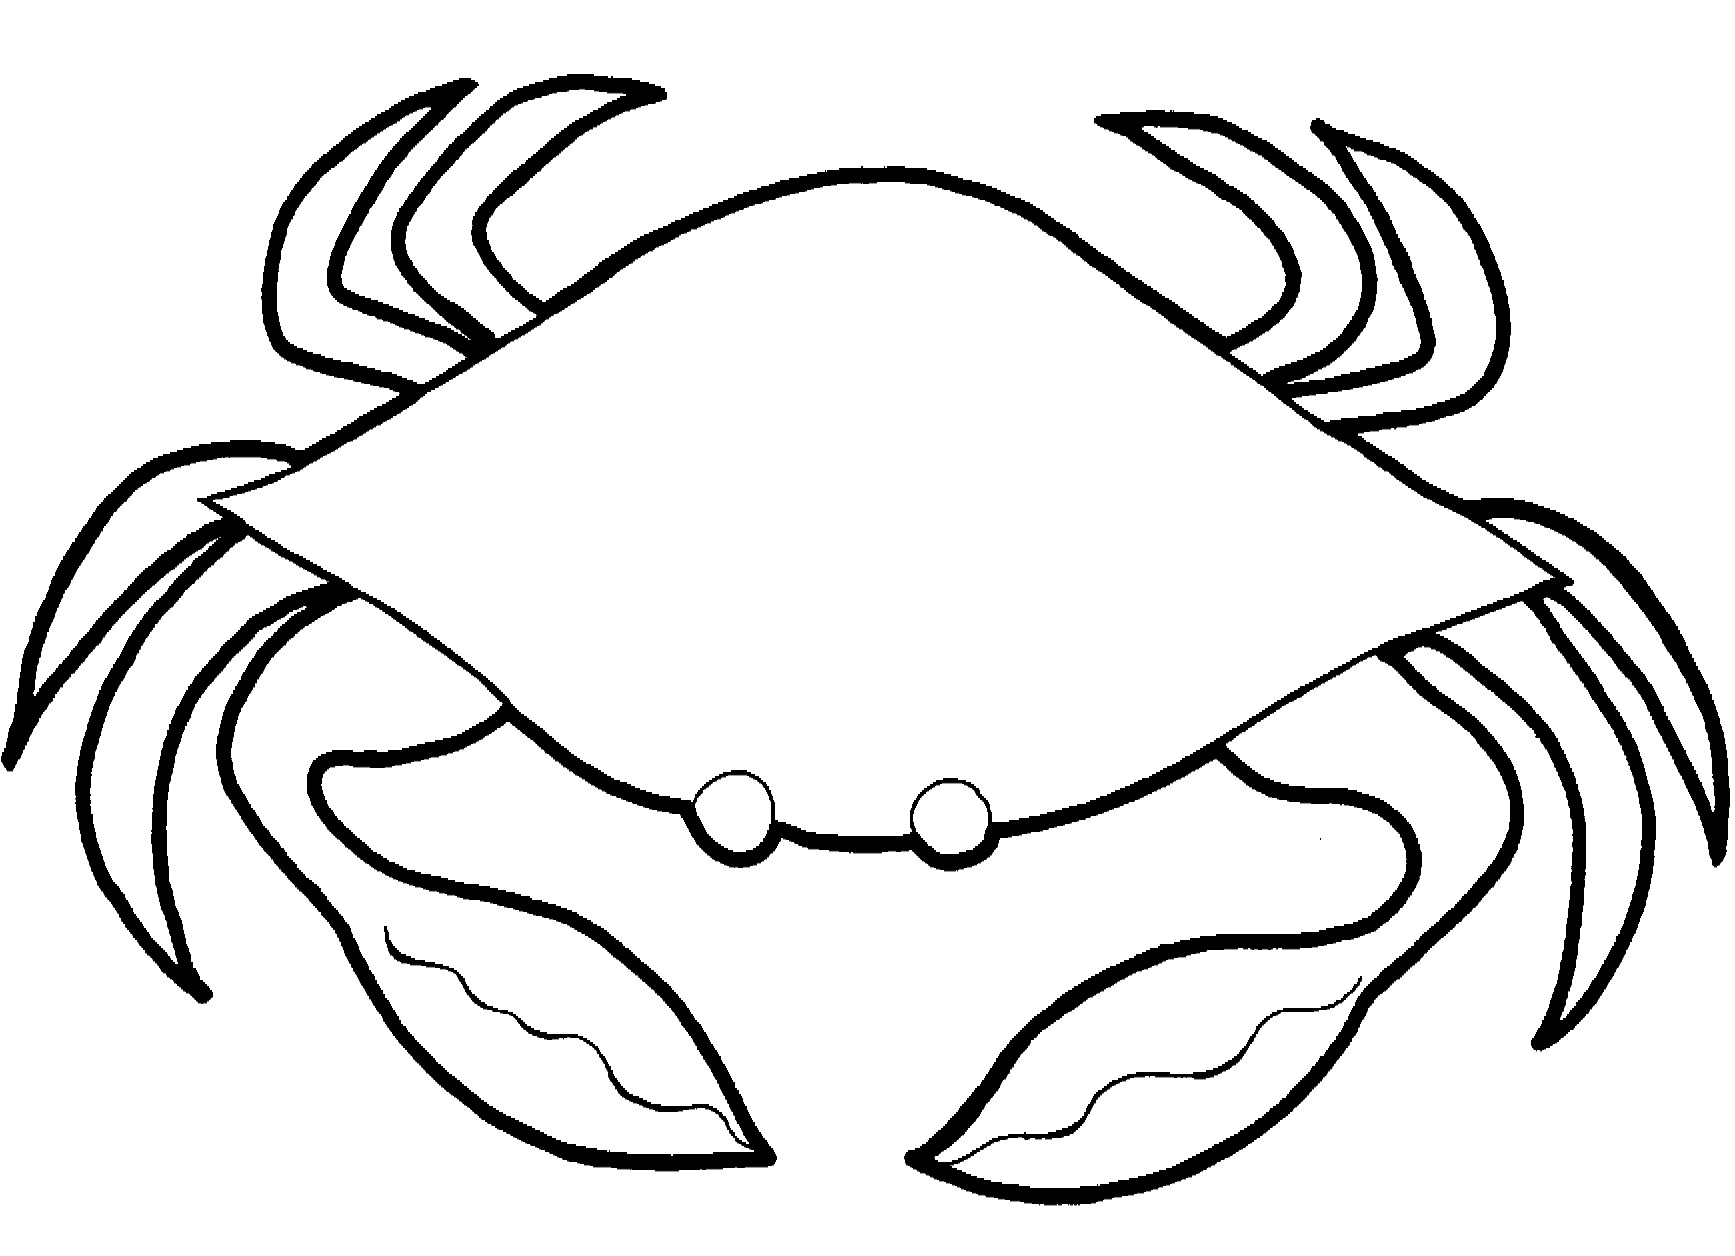 Cute lobster coloring pages